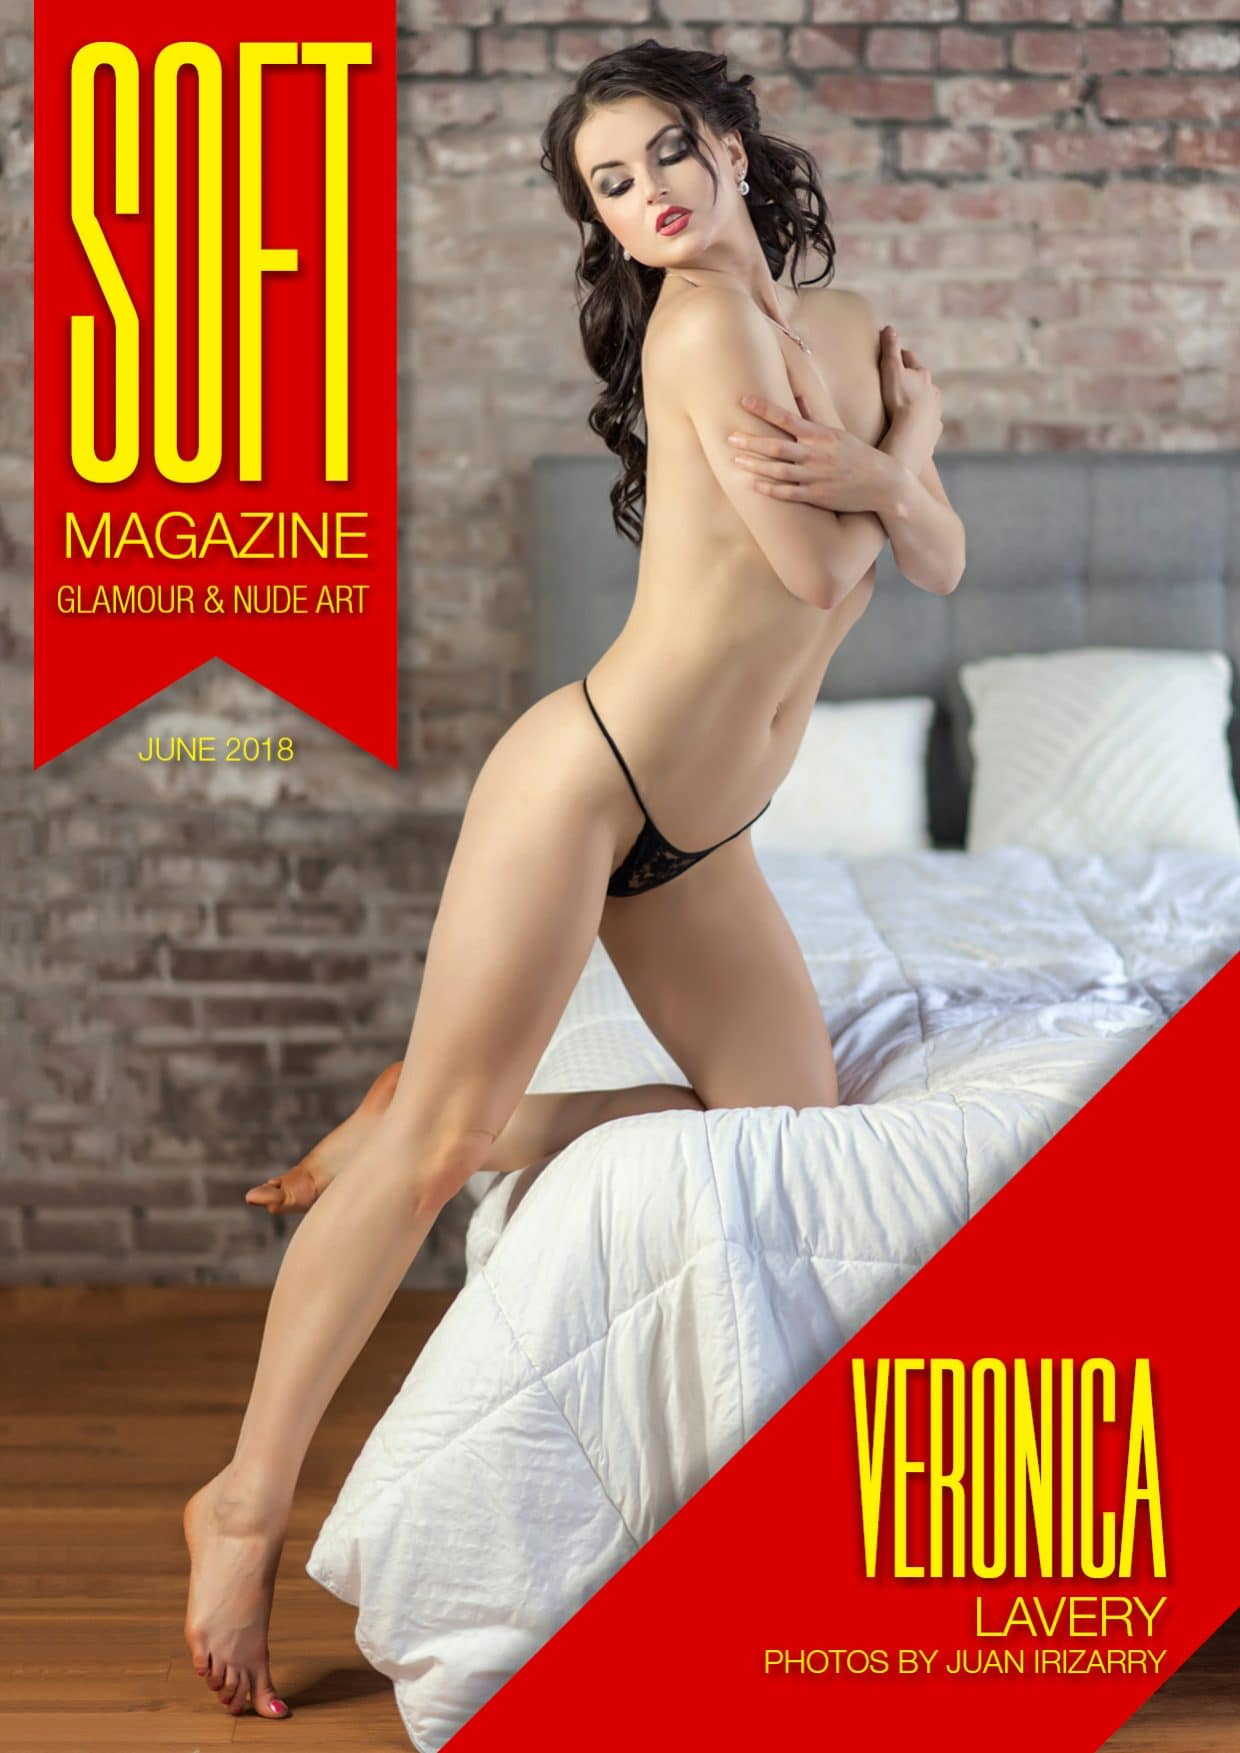 Soft Magazine – June 2018 – Veronica LaVery